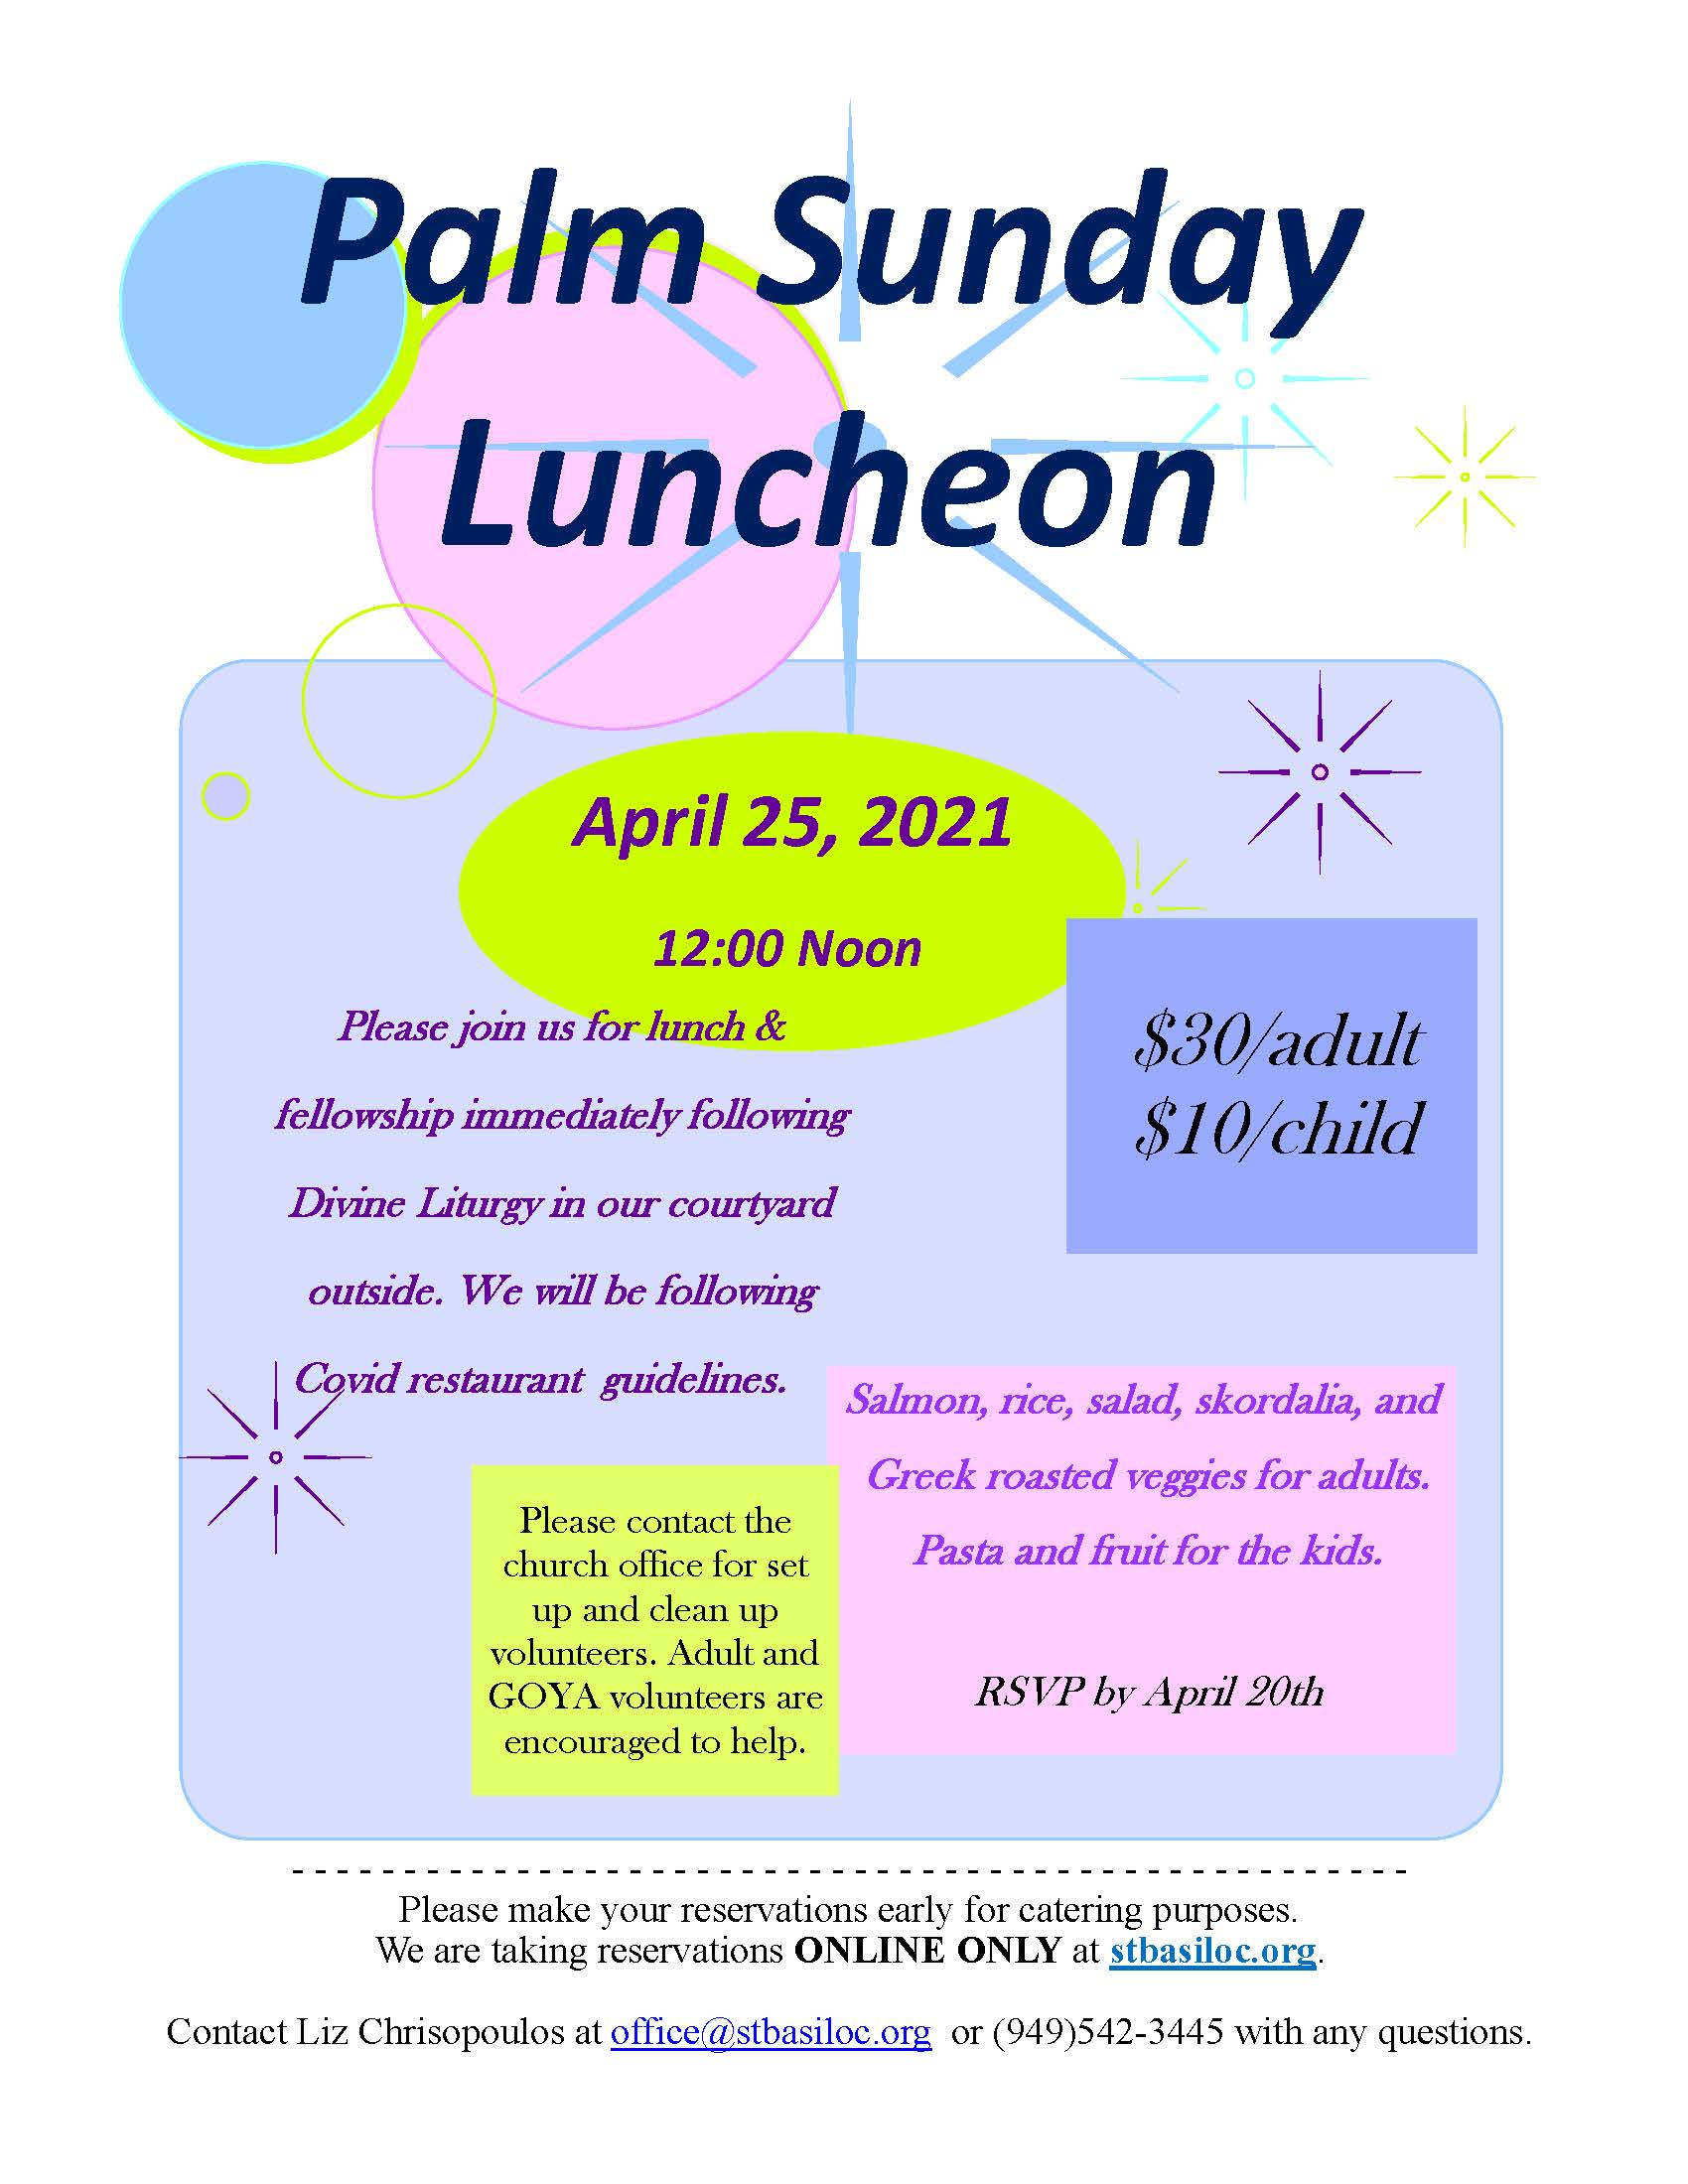 Palm Sunday Luncheon